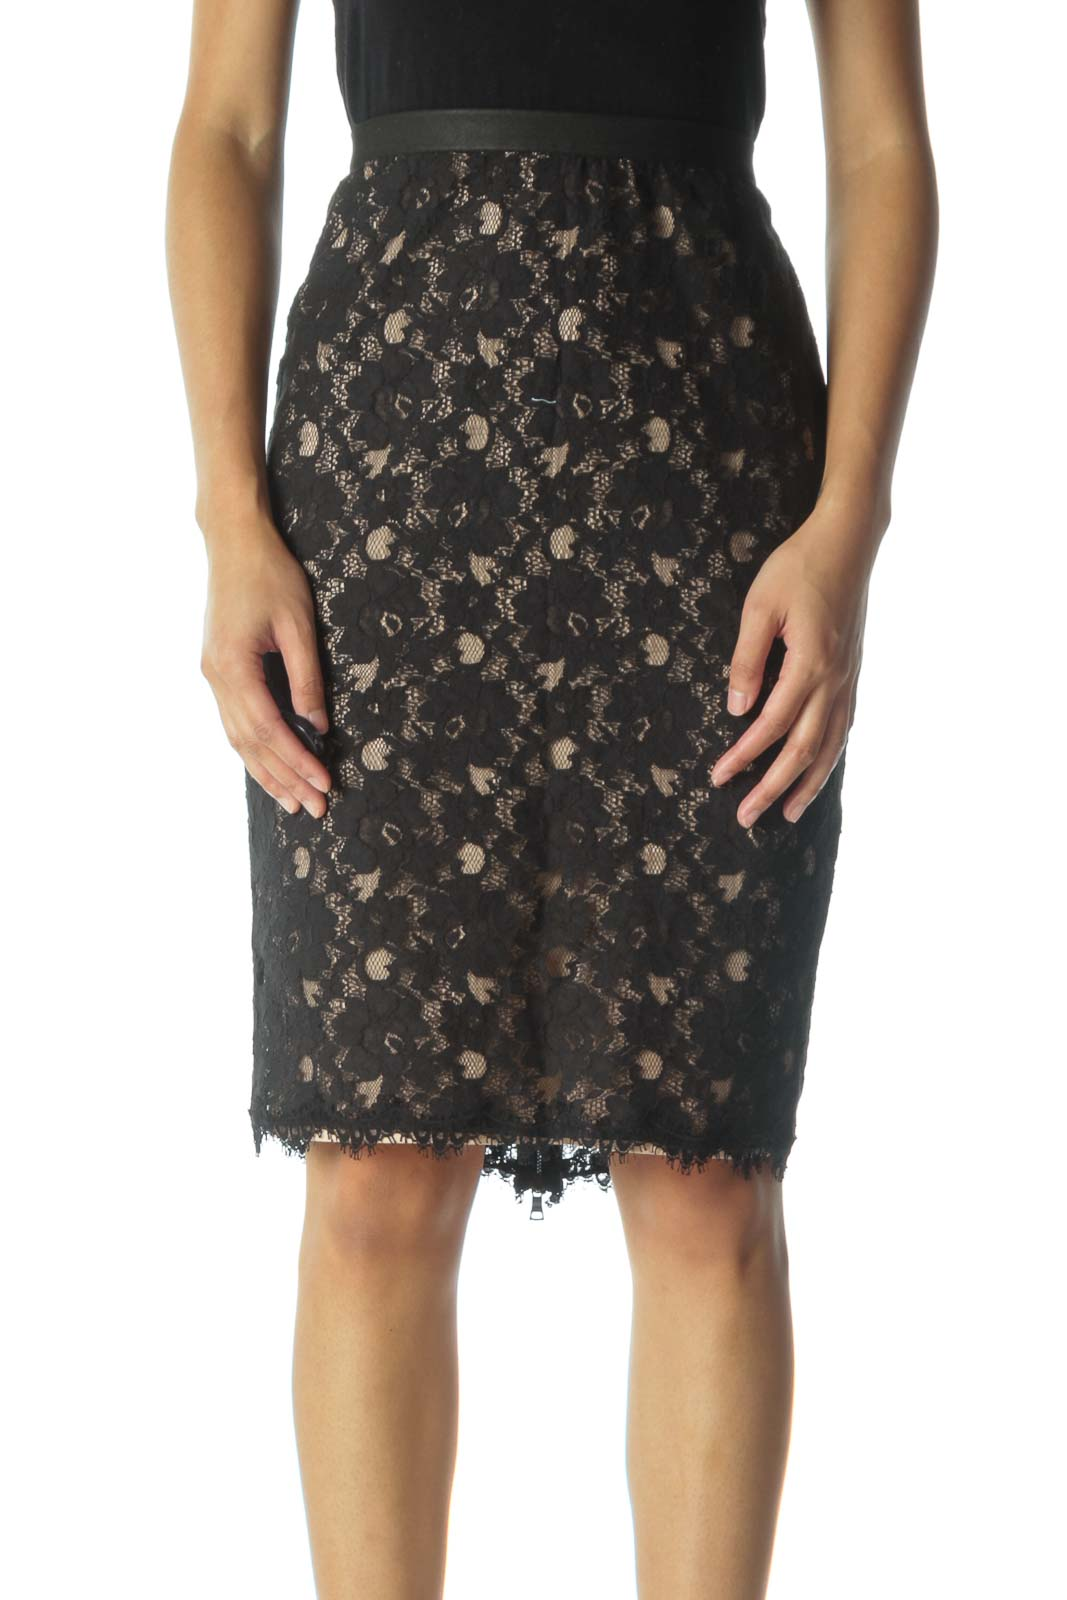 Black and Cream Lace Pencil Skirt